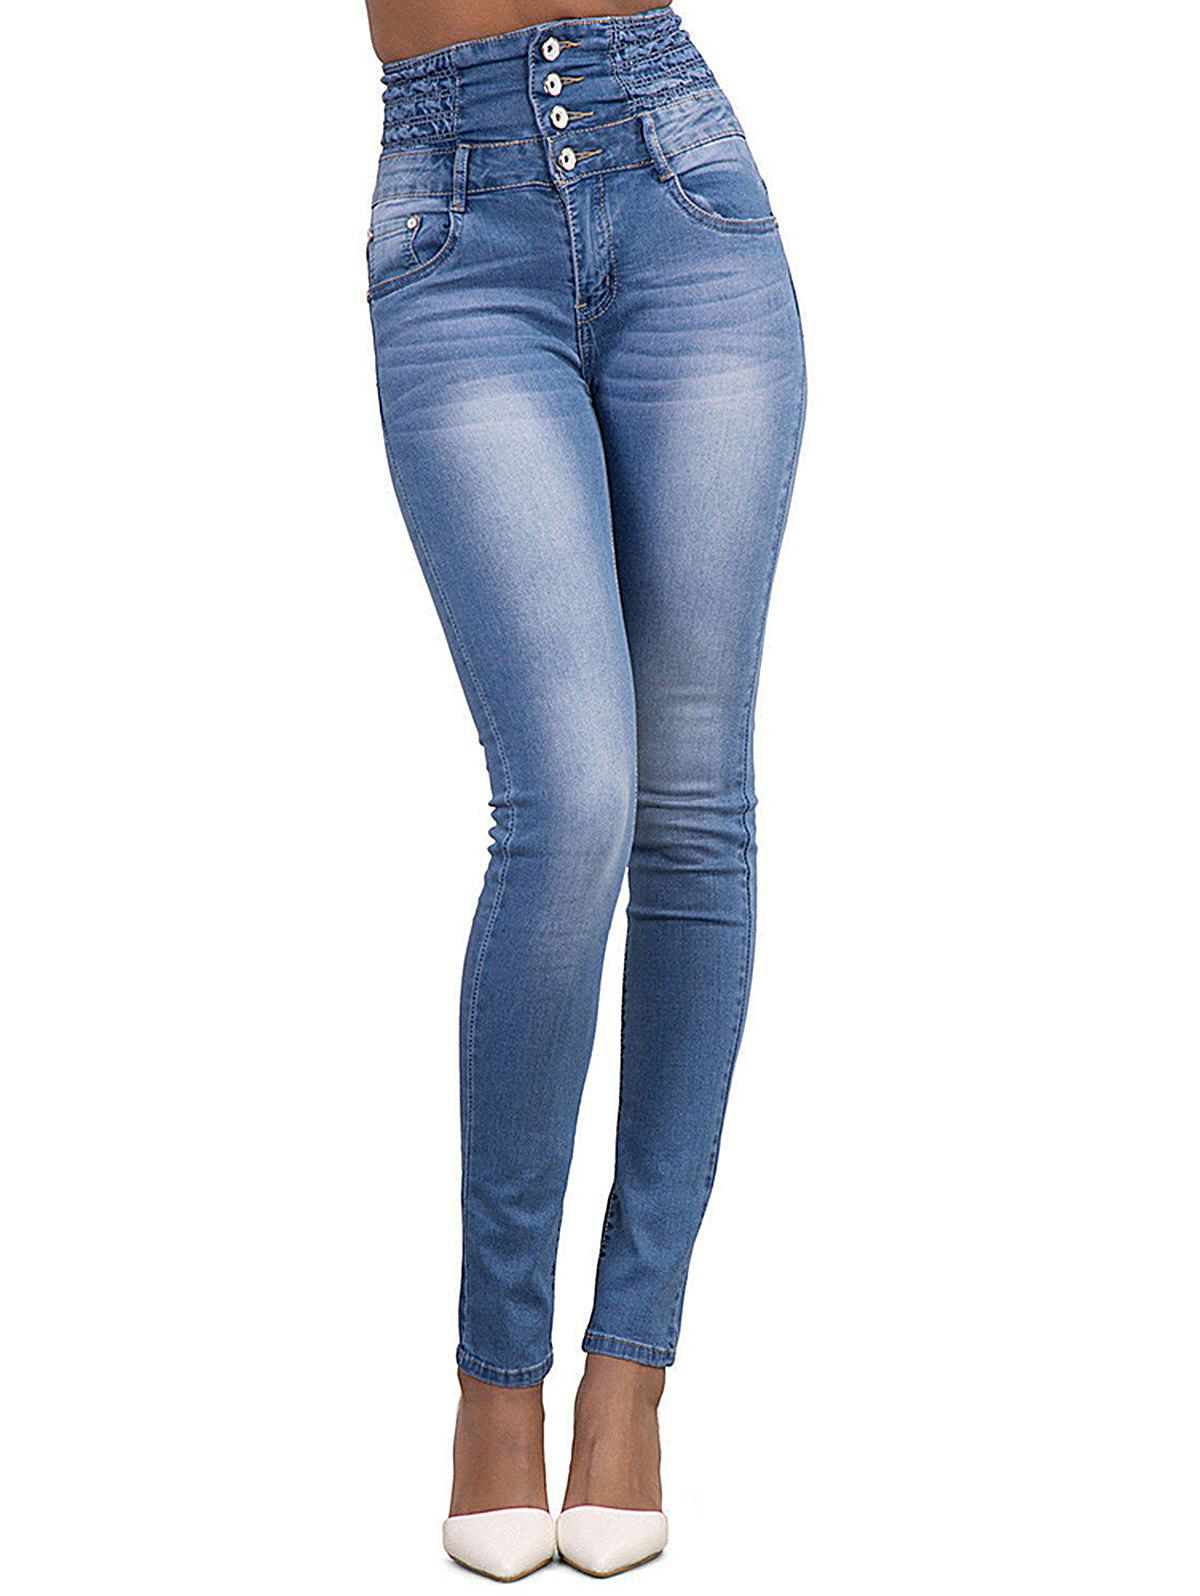 5790afb96d4f Cheap 新sku444229601Womens Fashion High Waisted Stretch Skinny Denim Jeans